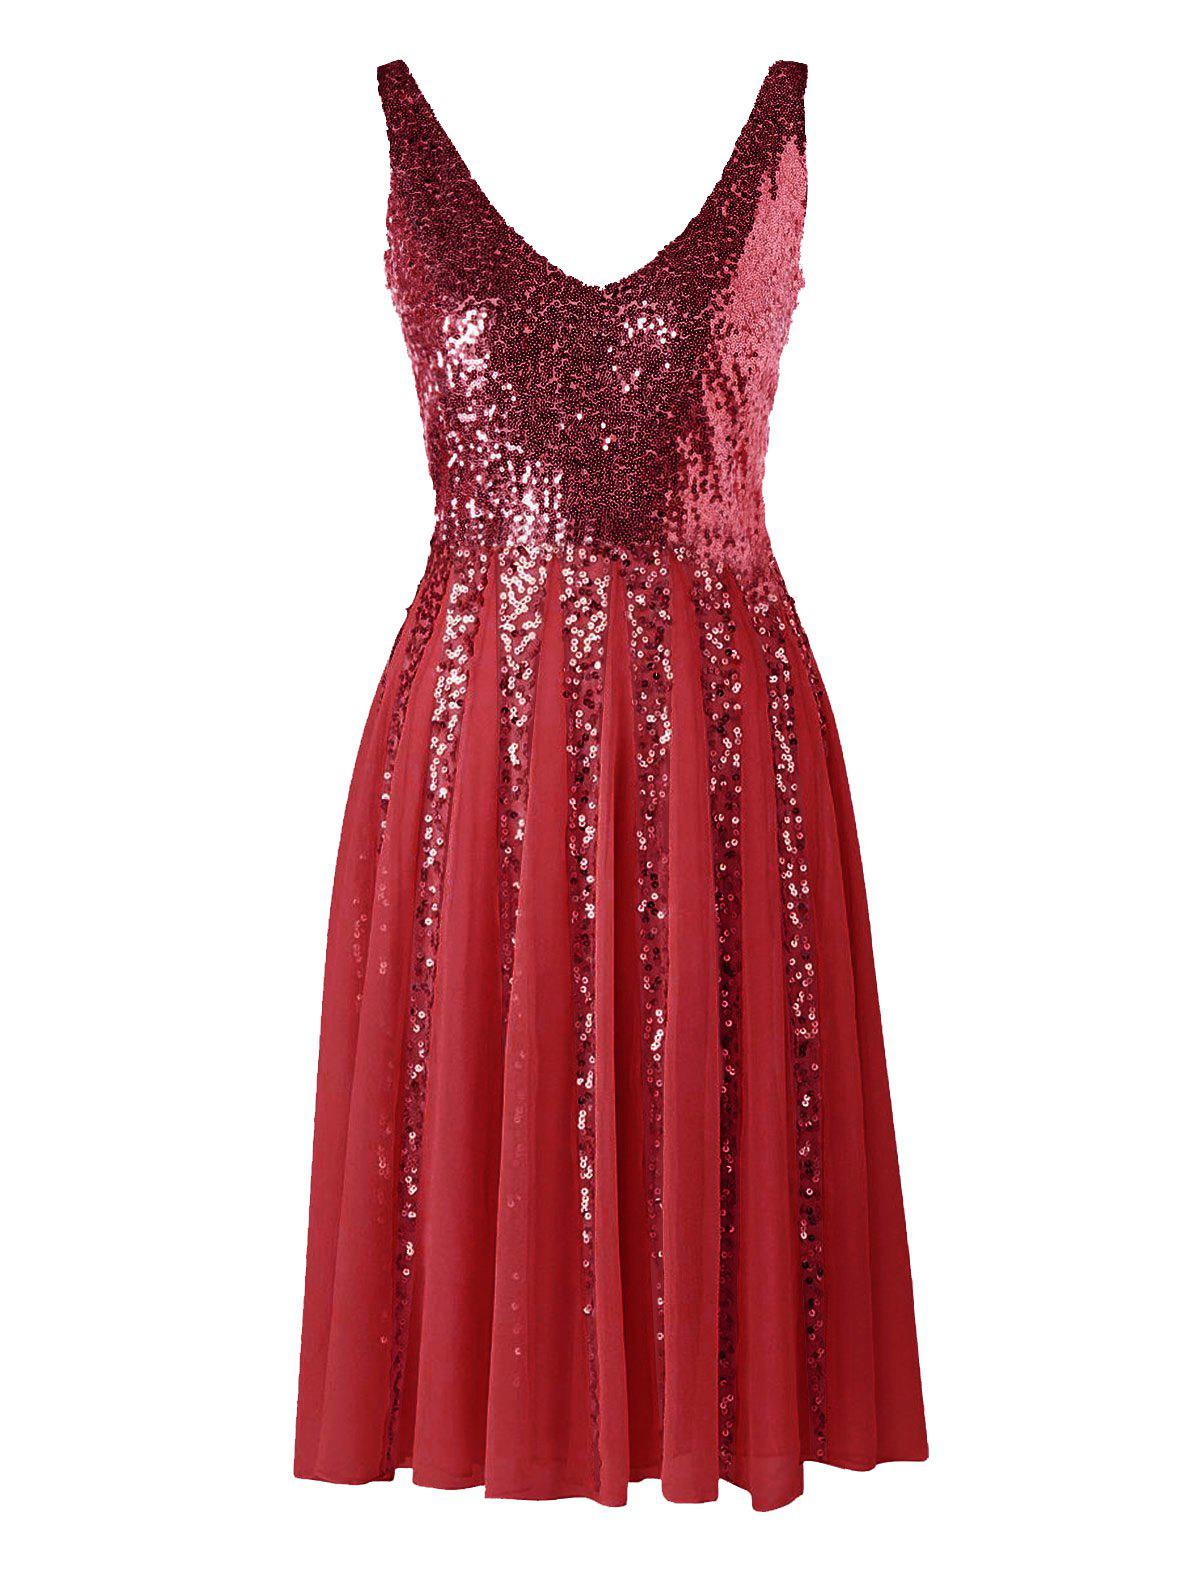 Sequined Sleeveless Chiffon Dress - WINE RED M